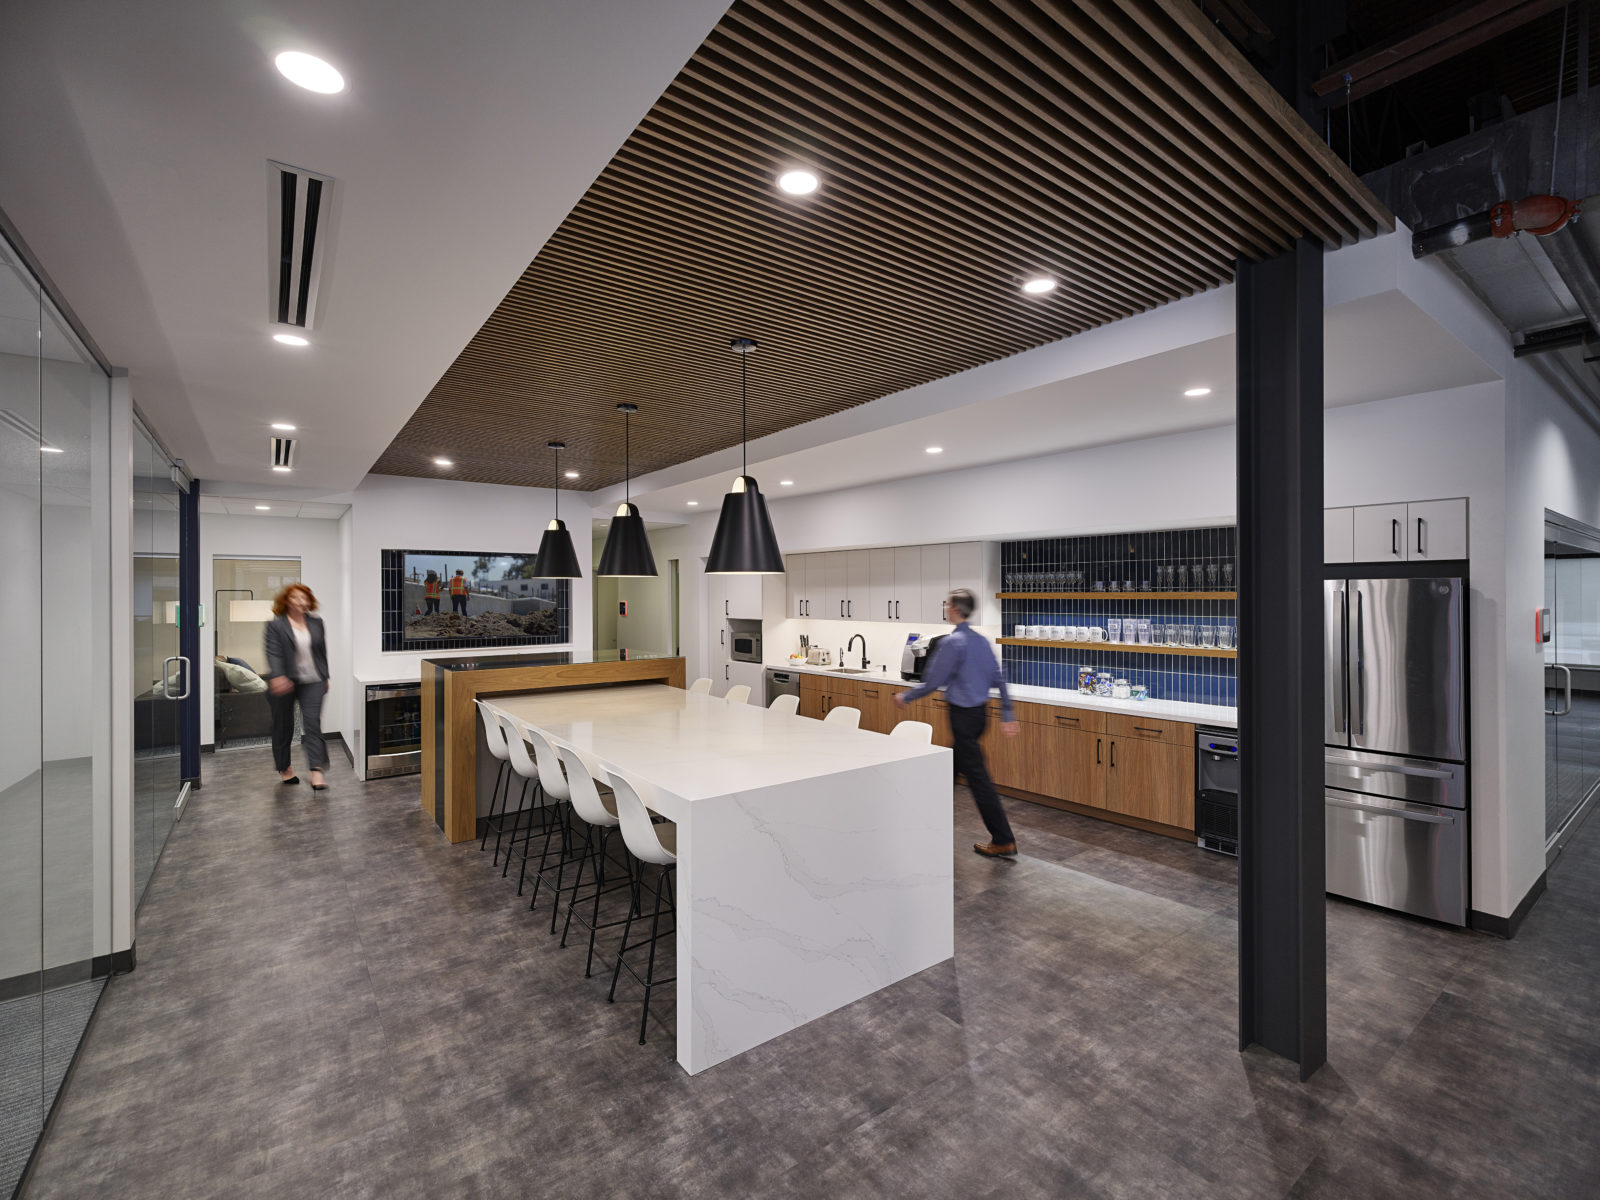 A modern kitchen interior at DPR's Baltimore office.